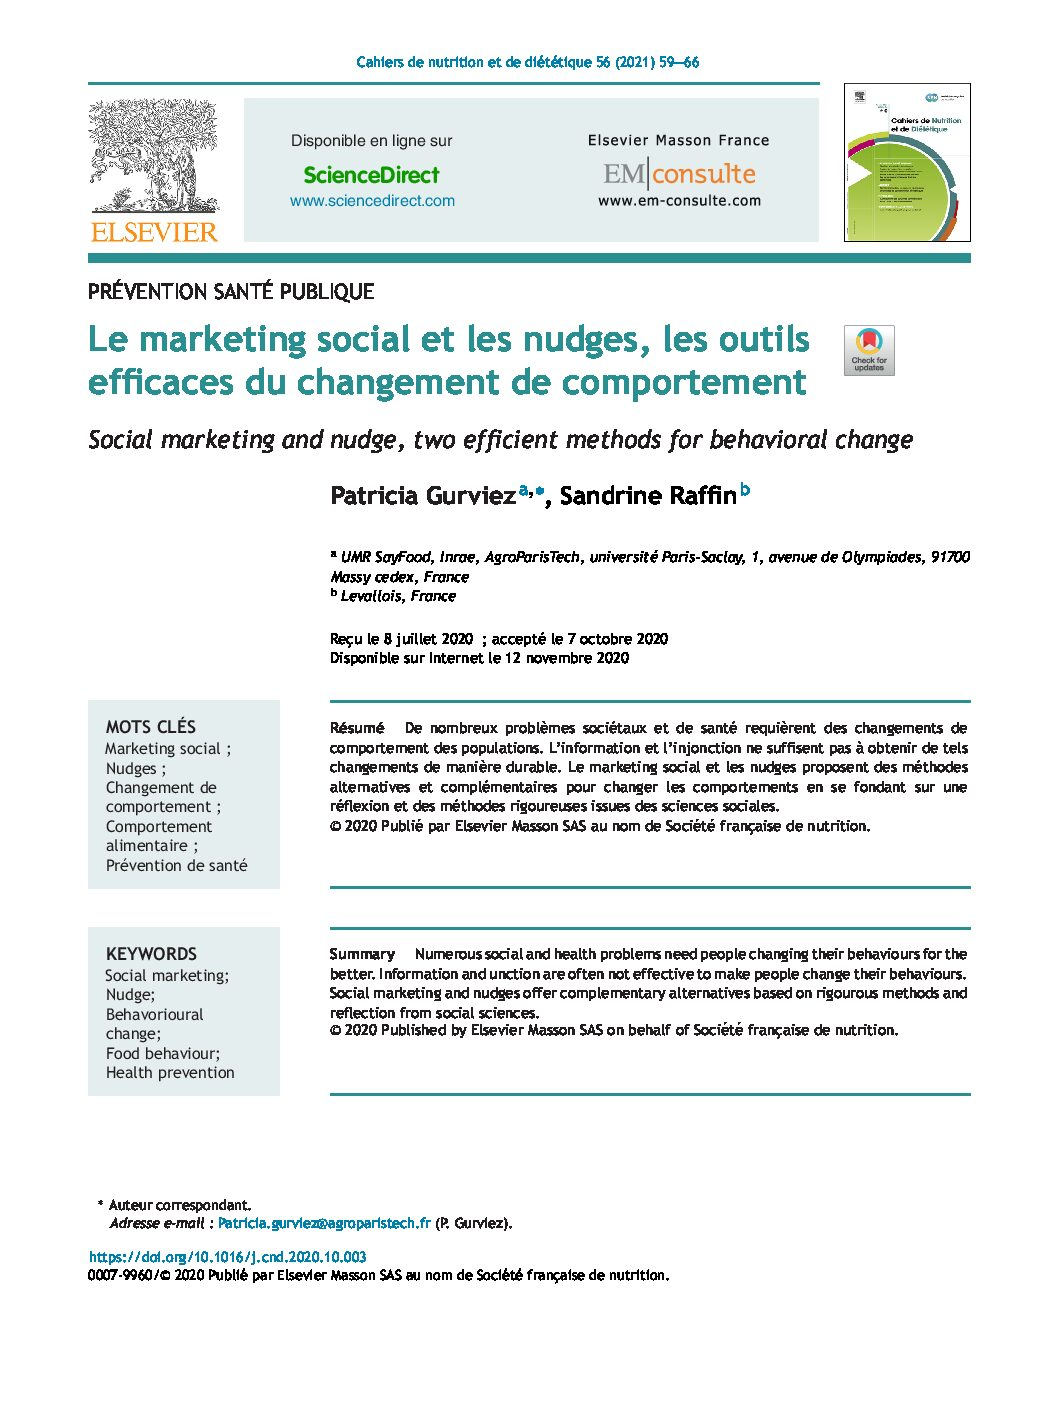 Le changement de comportement alimentaire par le marketing social & les nudges